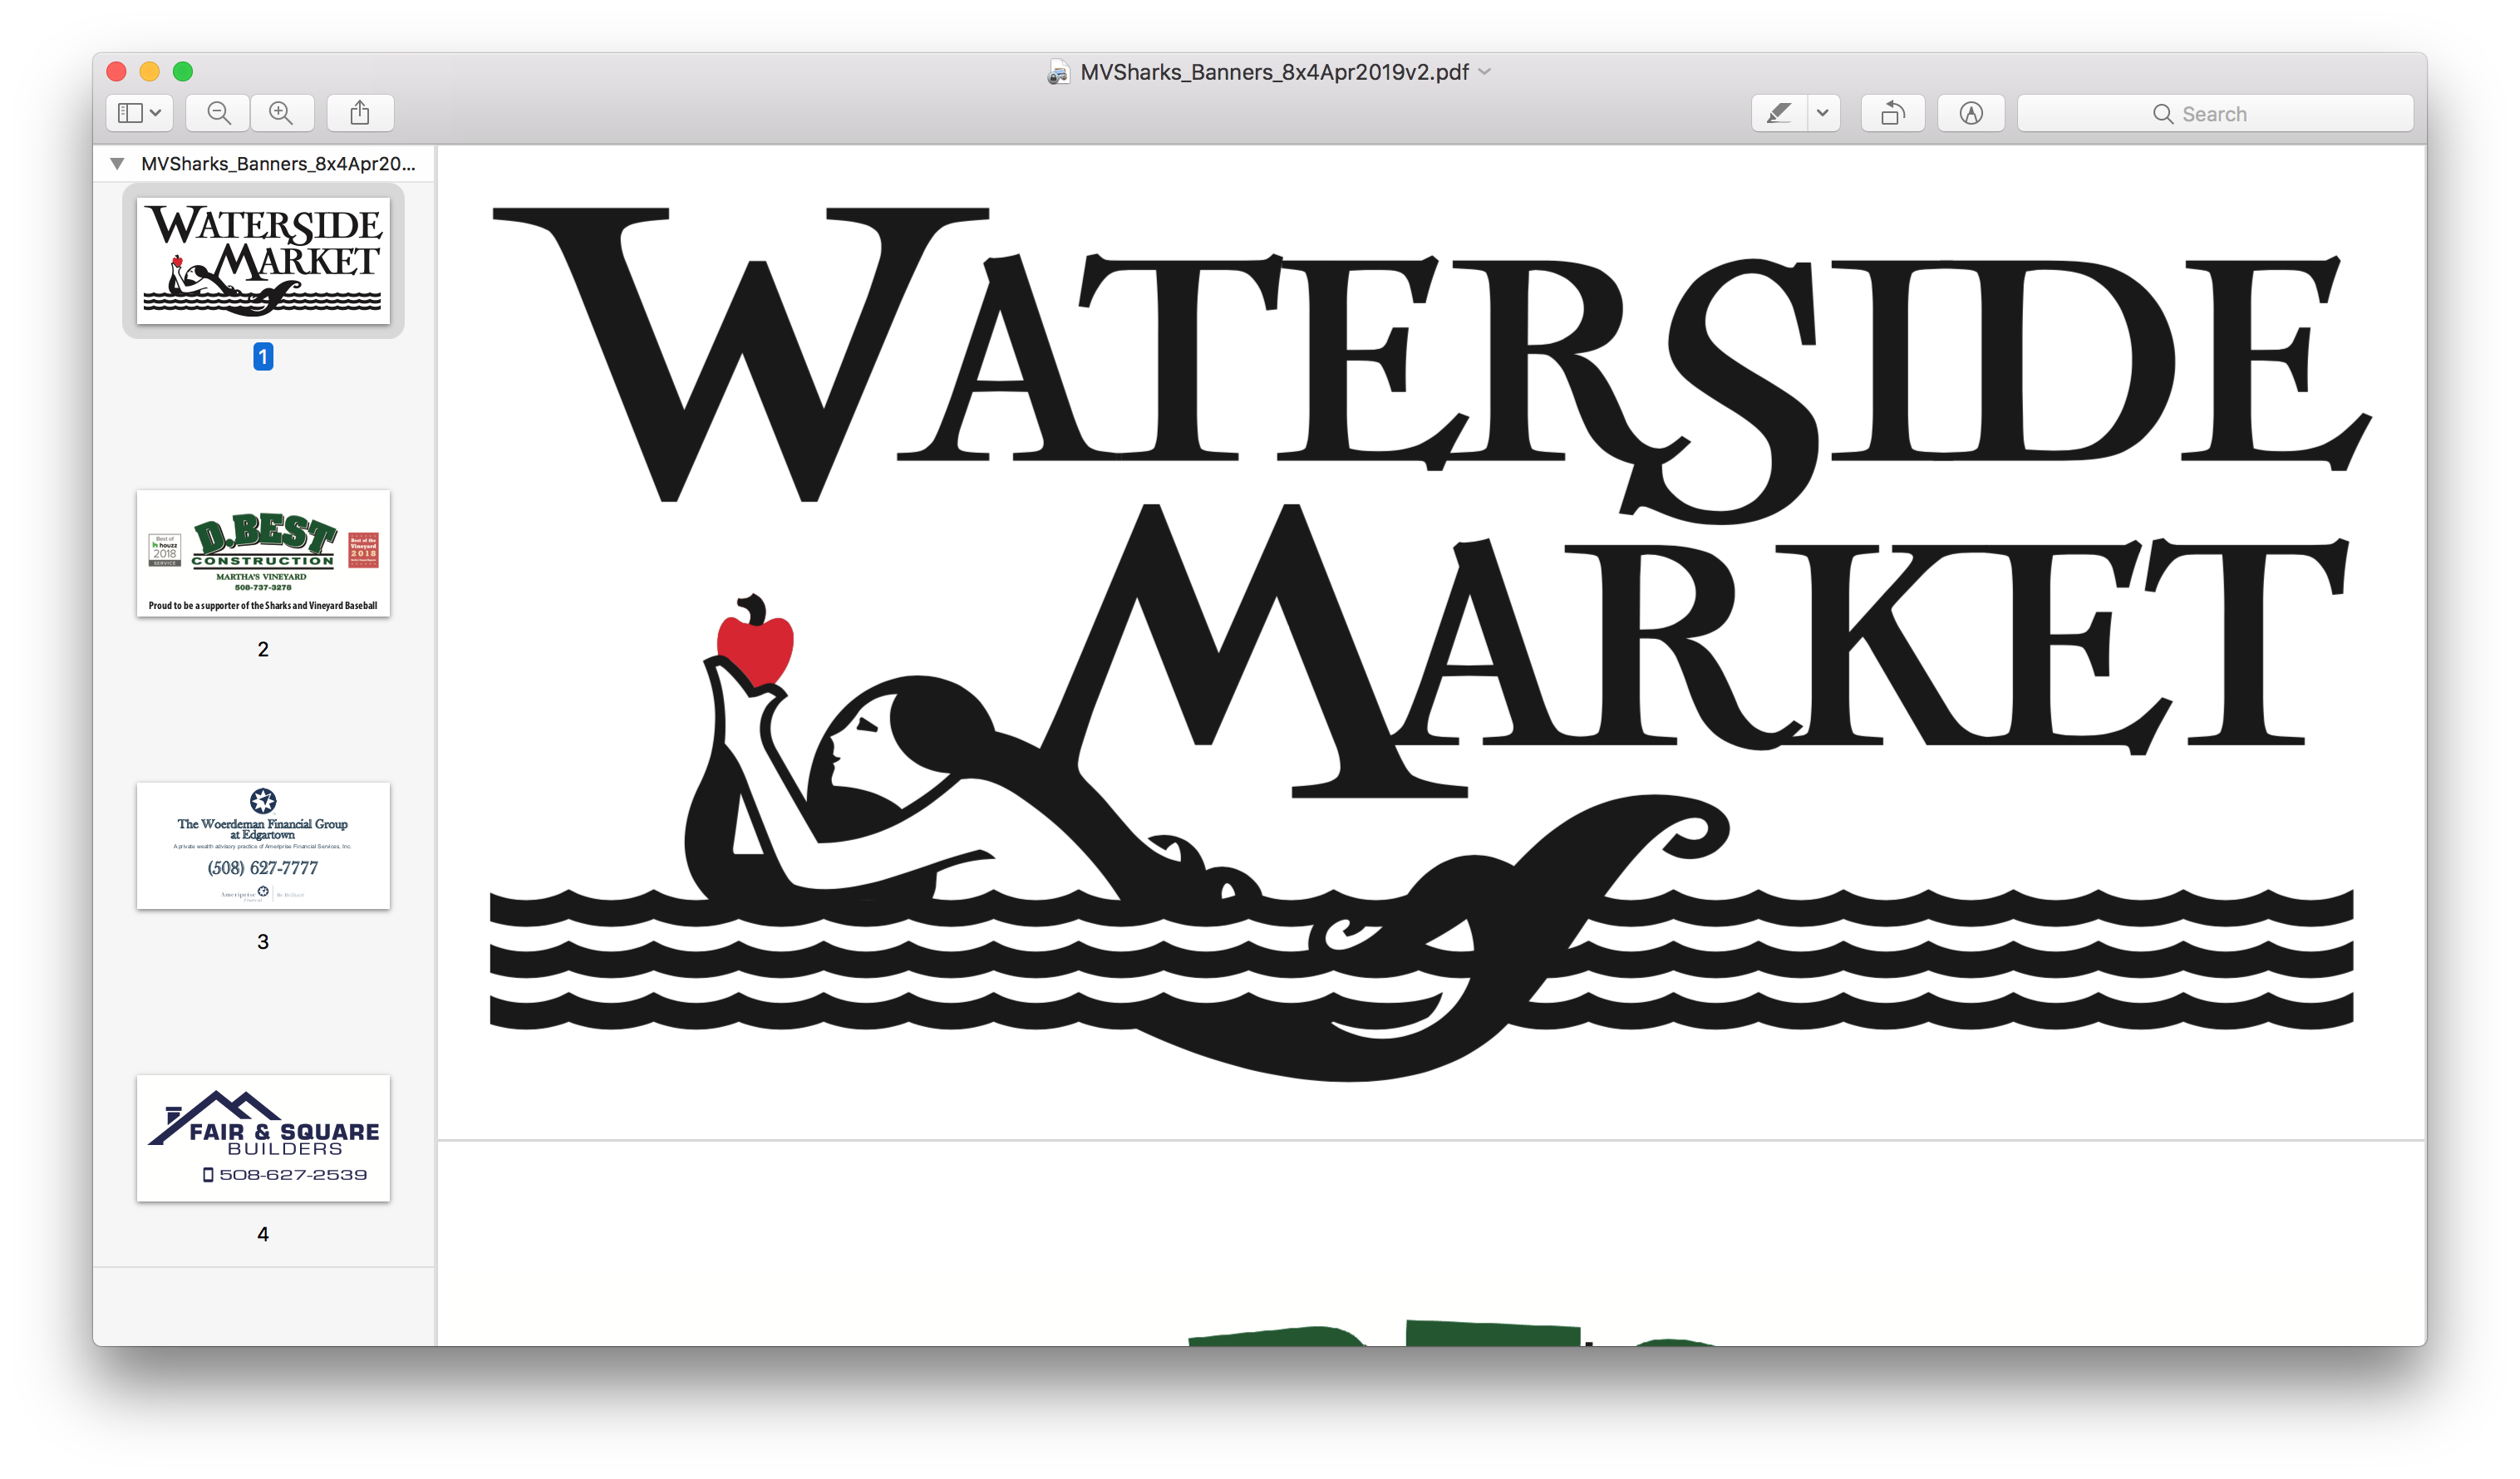 Waterside Market